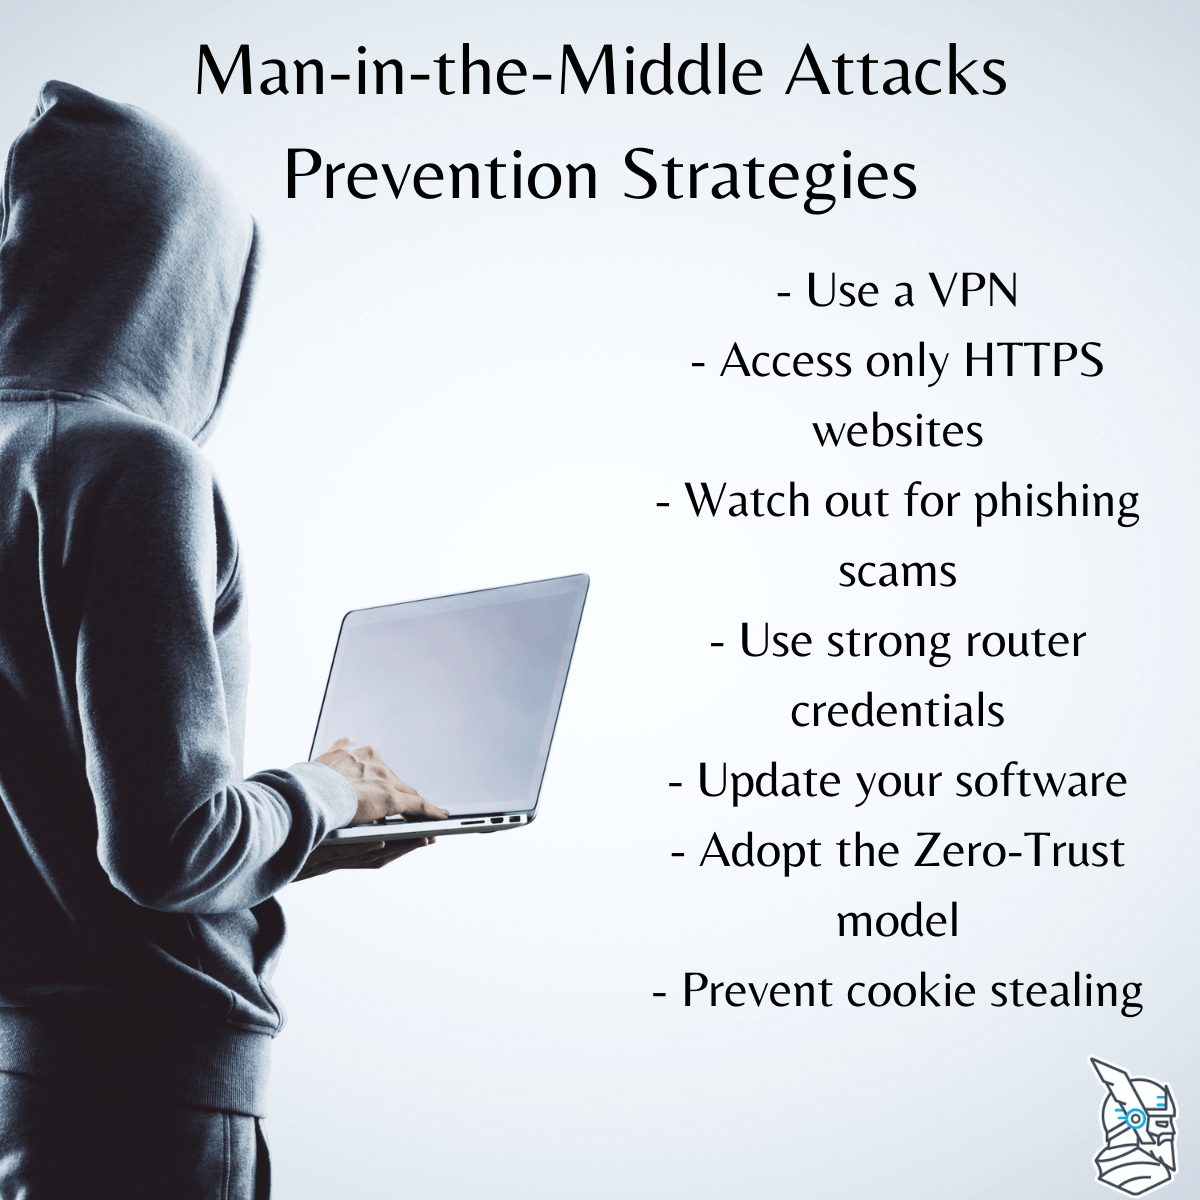 Man-in-the-Middle-Attack-Prevention-Strategies